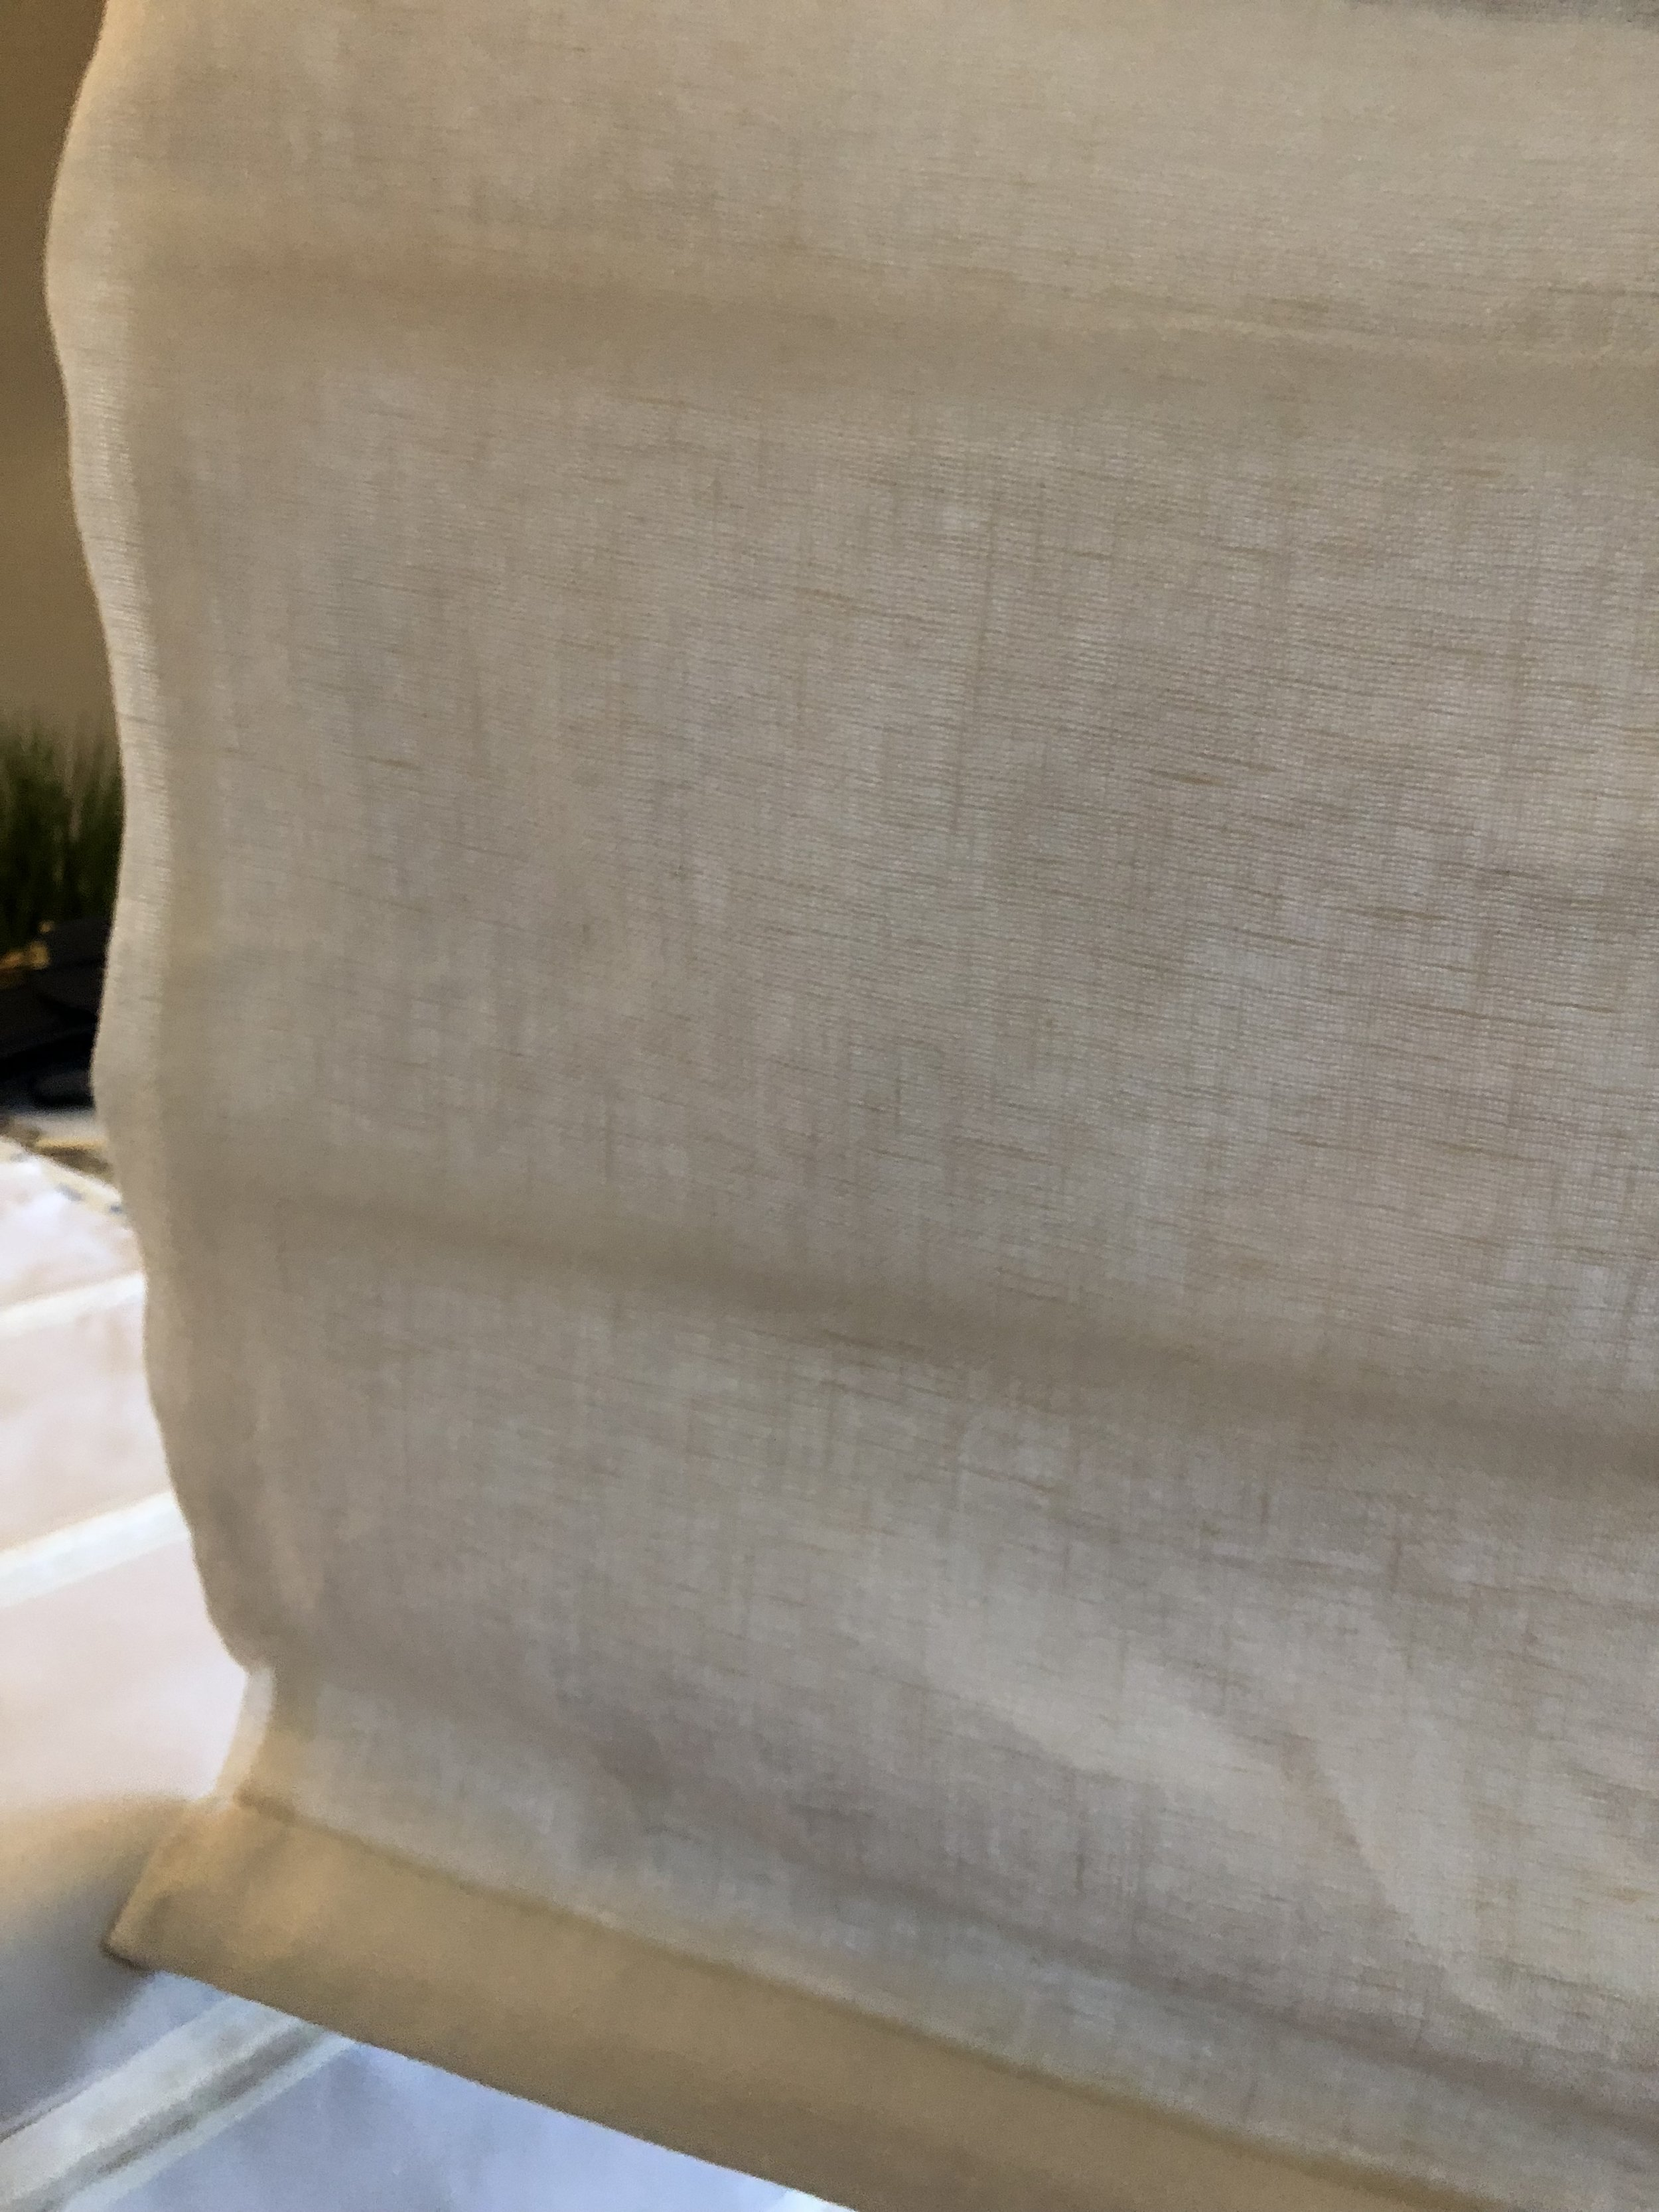 Linen- Not enough structure to sides of shade, therefore, won't be as straight on edges. Not ideal for shades!